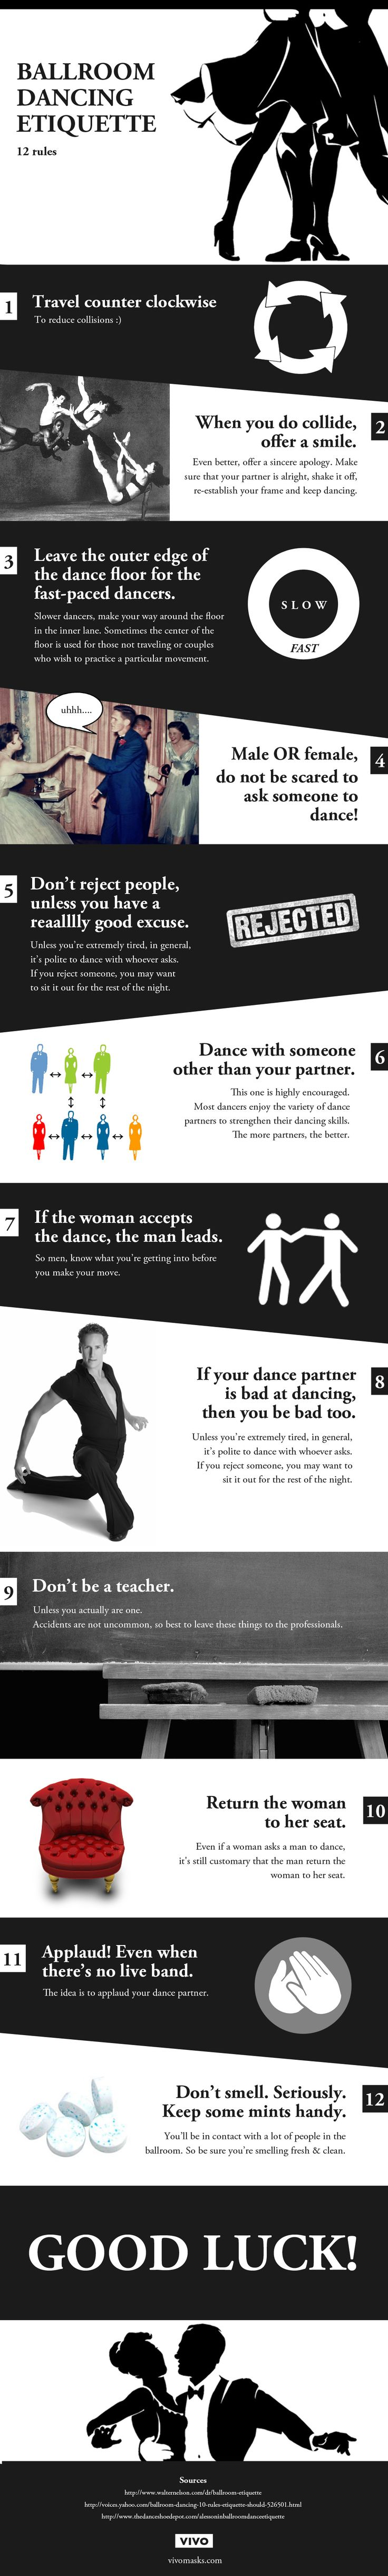 more like social dance etiquette, but some do apply to ballroom